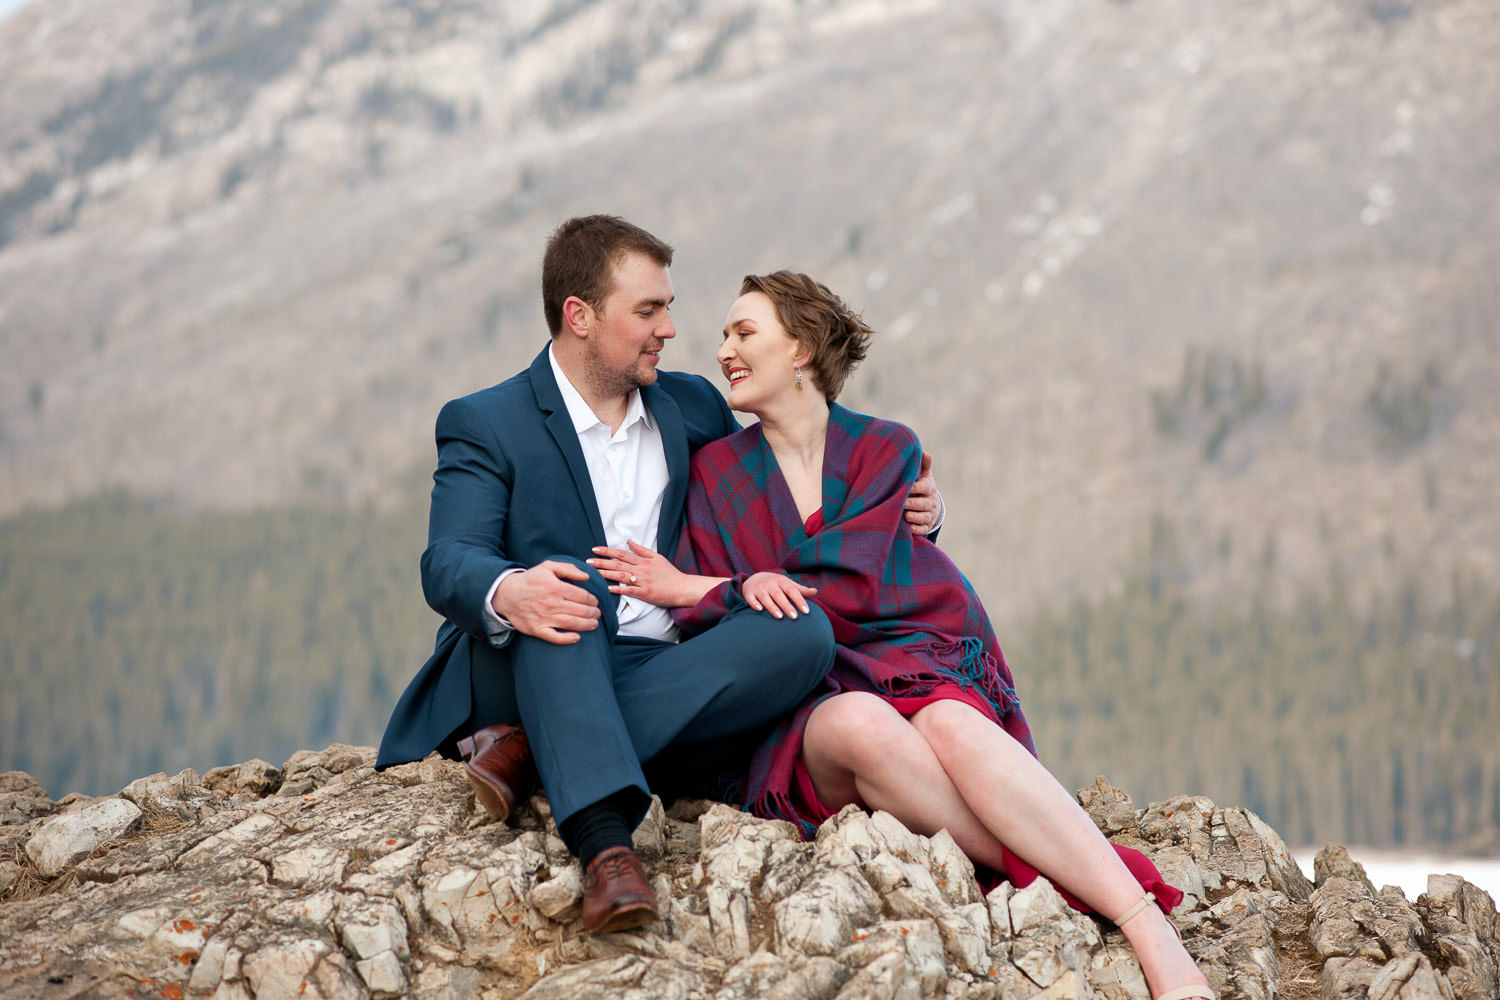 Engagement shoot at Lake Minnewanka Calgary wedding photographer Tara Whittaker